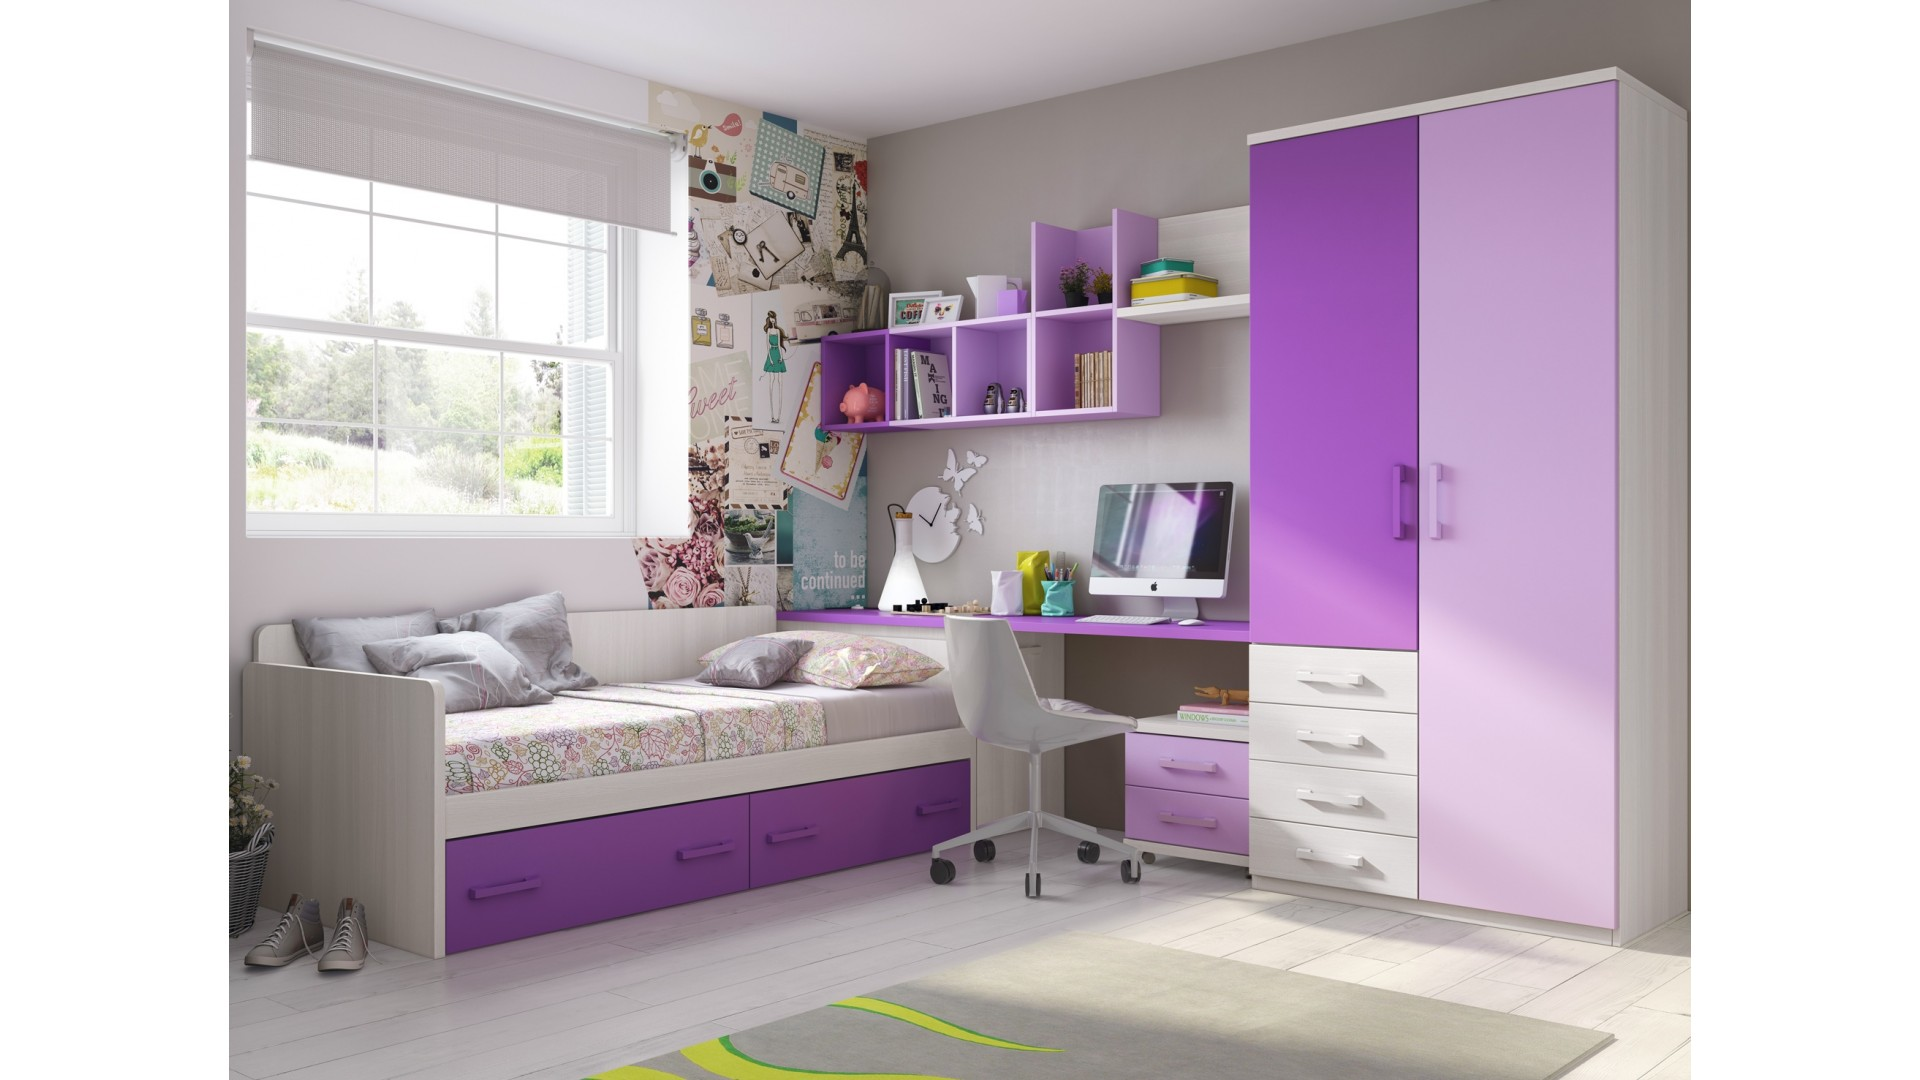 chambre ado fille avec armoire courbe pratique glicerio. Black Bedroom Furniture Sets. Home Design Ideas